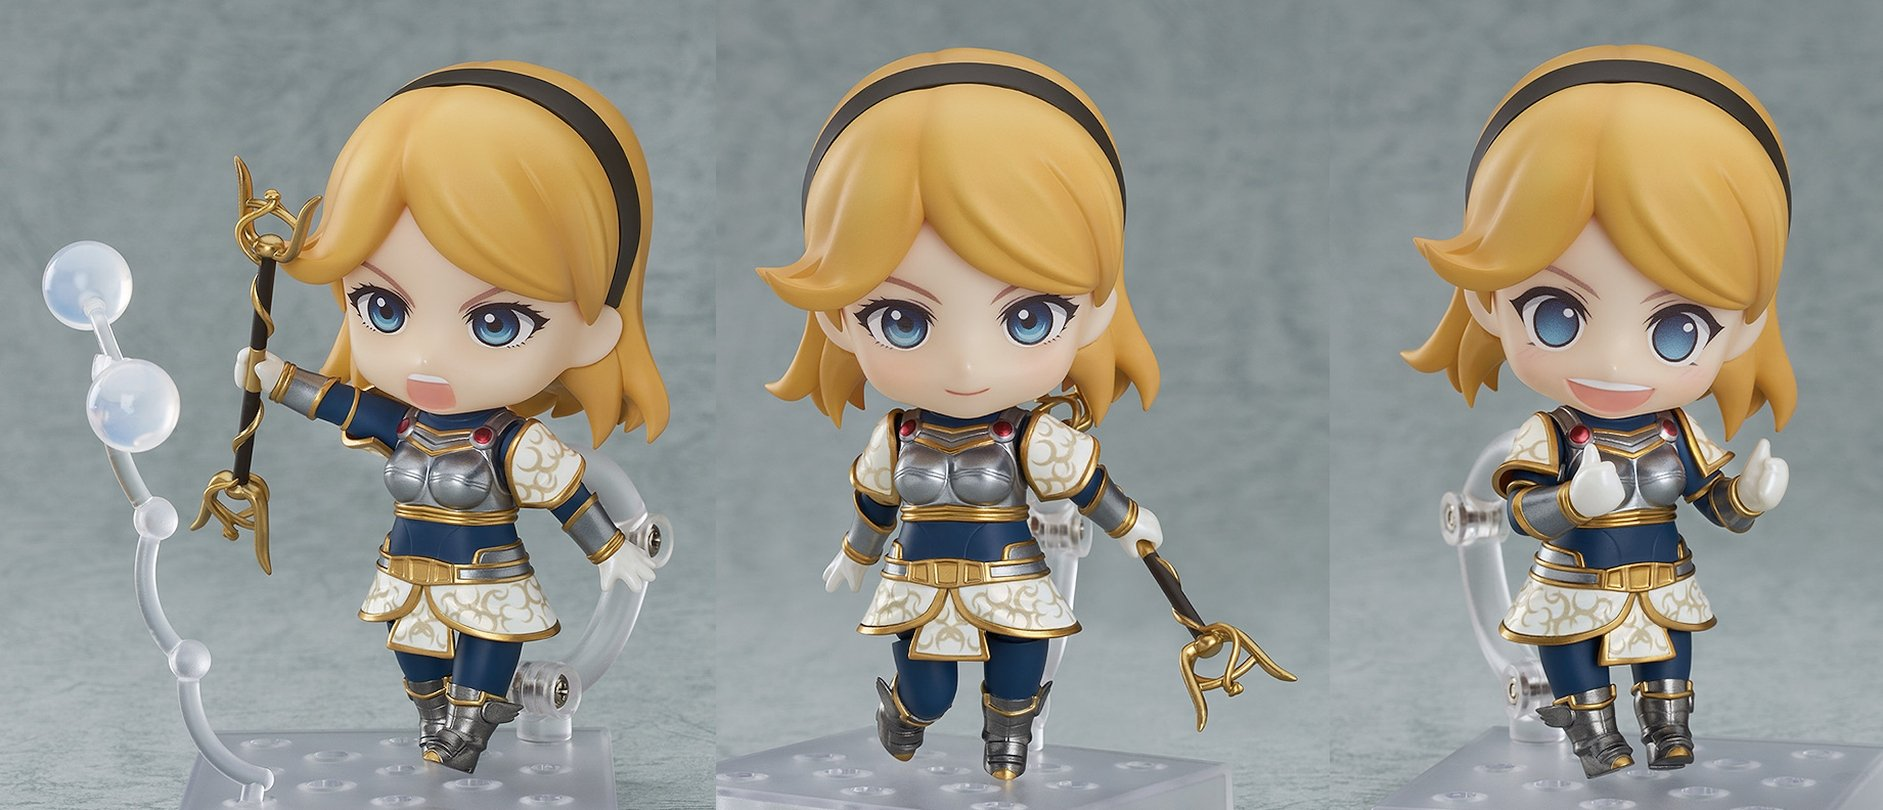 Good Smile Company's League of Legends Nendoroid Lux Now Ready For Preorder